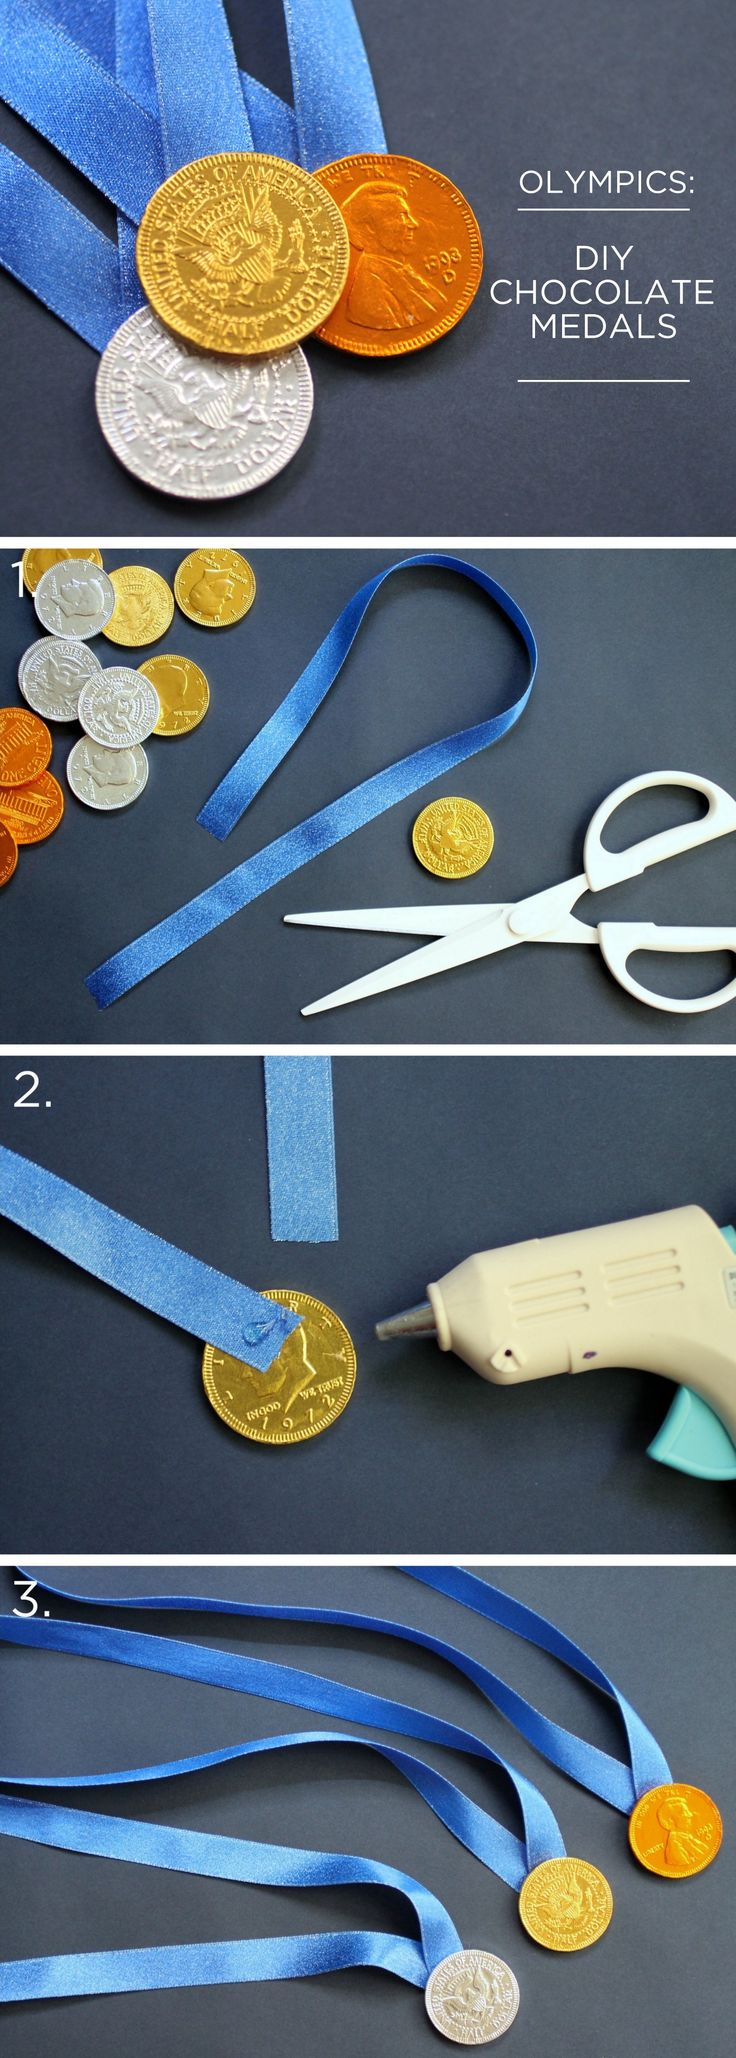 Take a look at this Winter Olympics #DIY Chocolate Medals How to Infographic #EviteGatherings